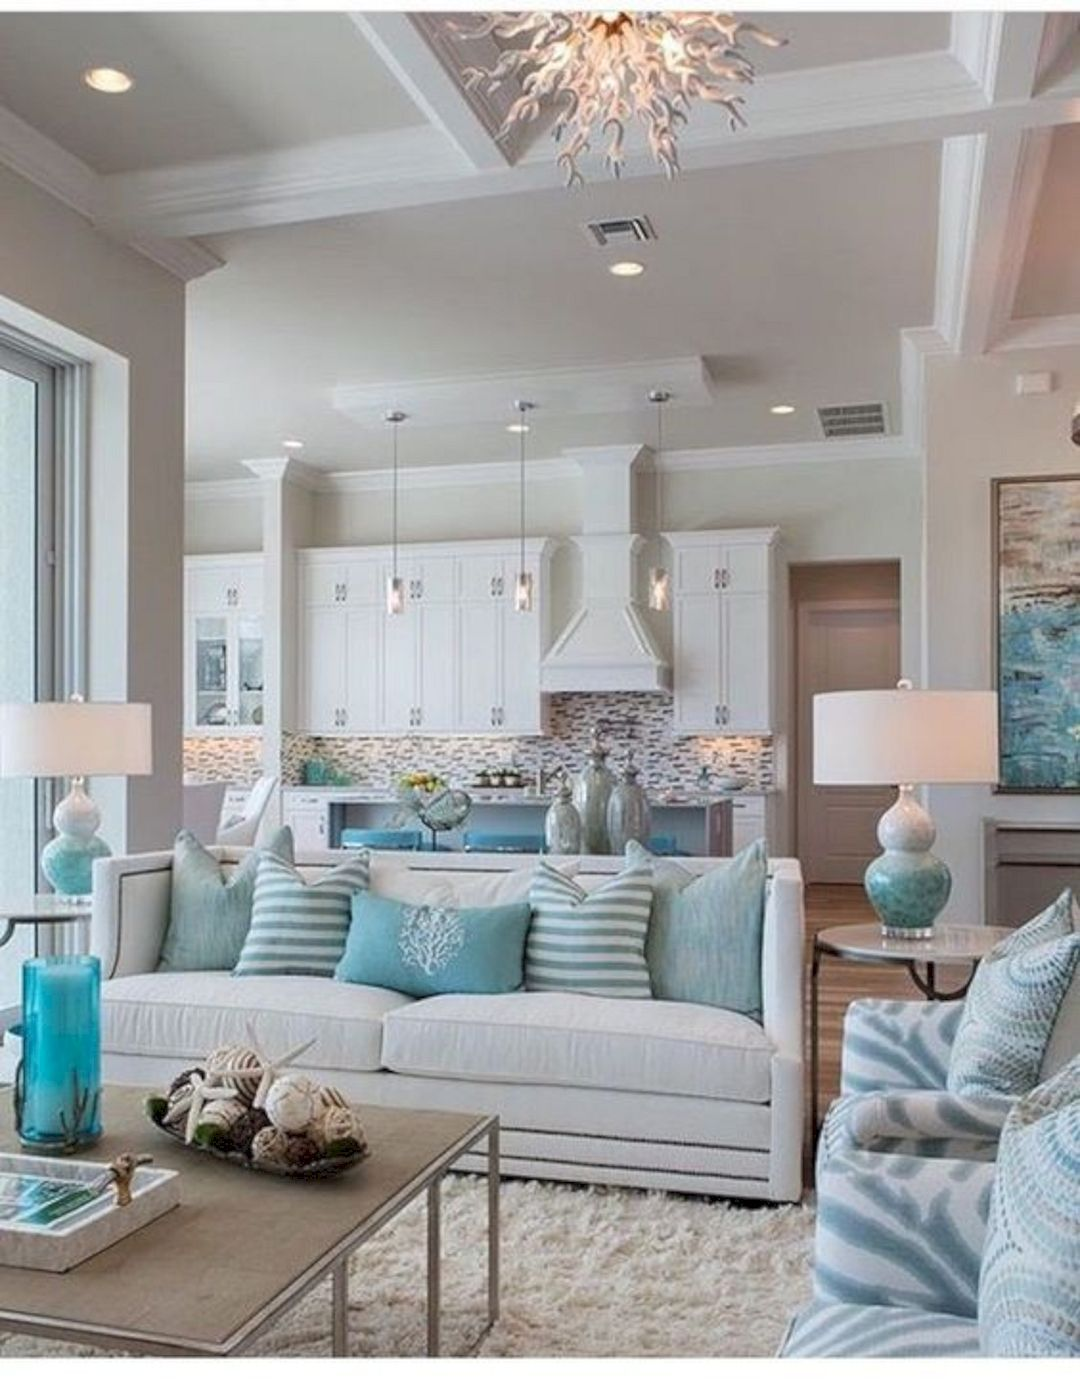 House Decors Ideas 16 Refreshing Home Decoration Ideas To Bring Out Coastal Feels